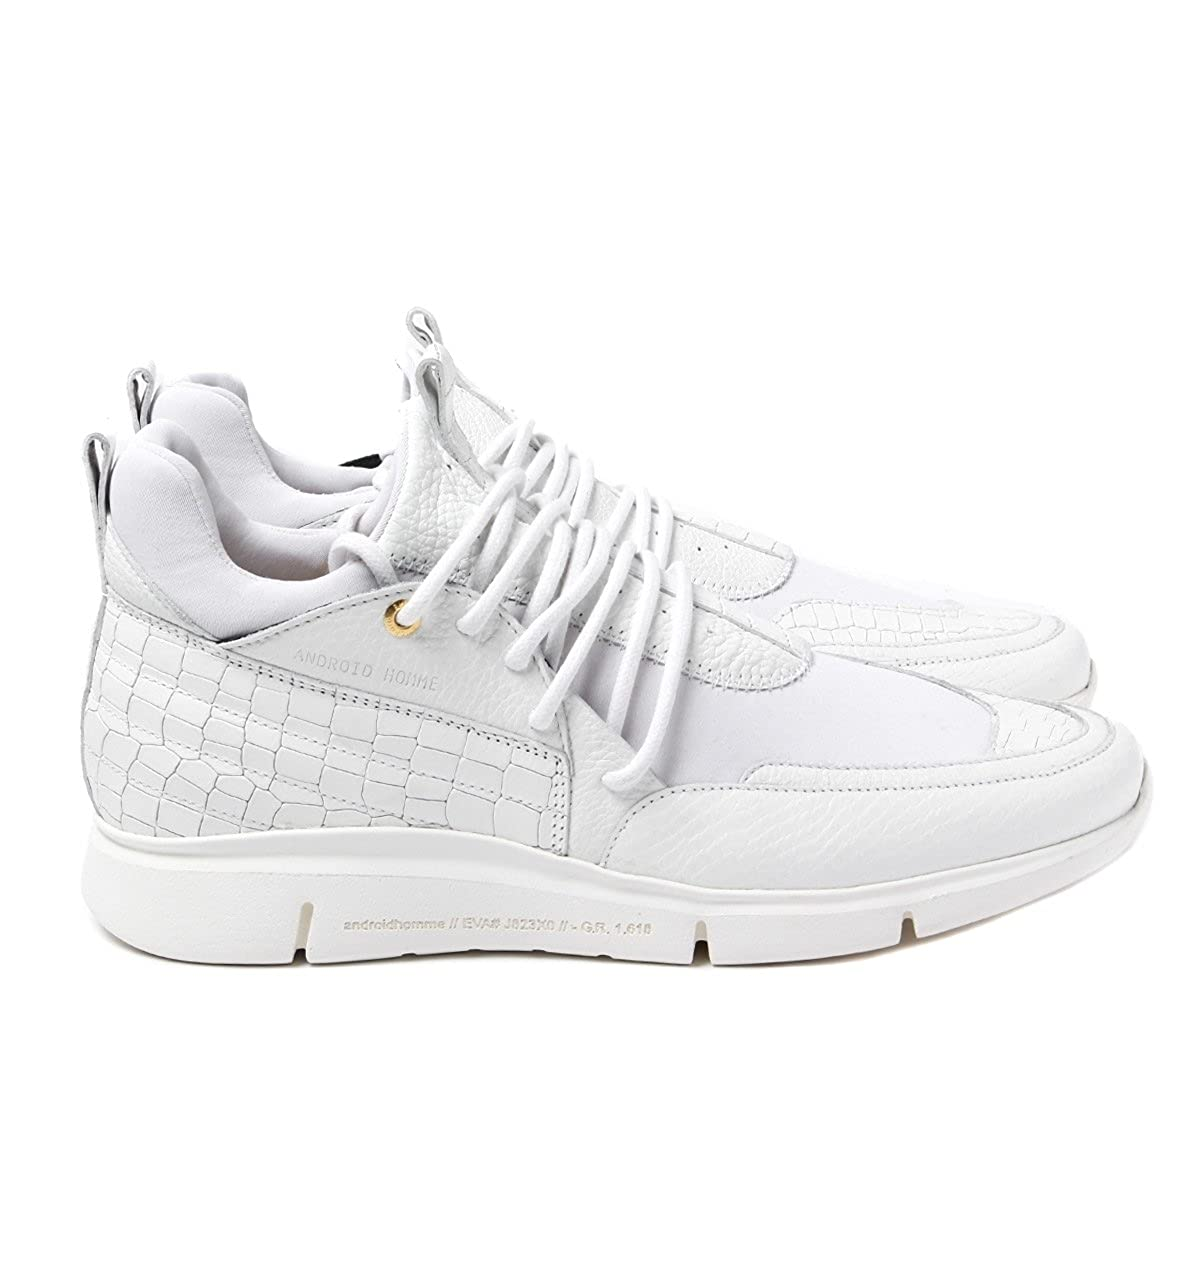 a6216e94ca5f9 Android Homme Runyon Runner 117 White Leather Trainers-UK 11  Amazon.co.uk   Shoes   Bags